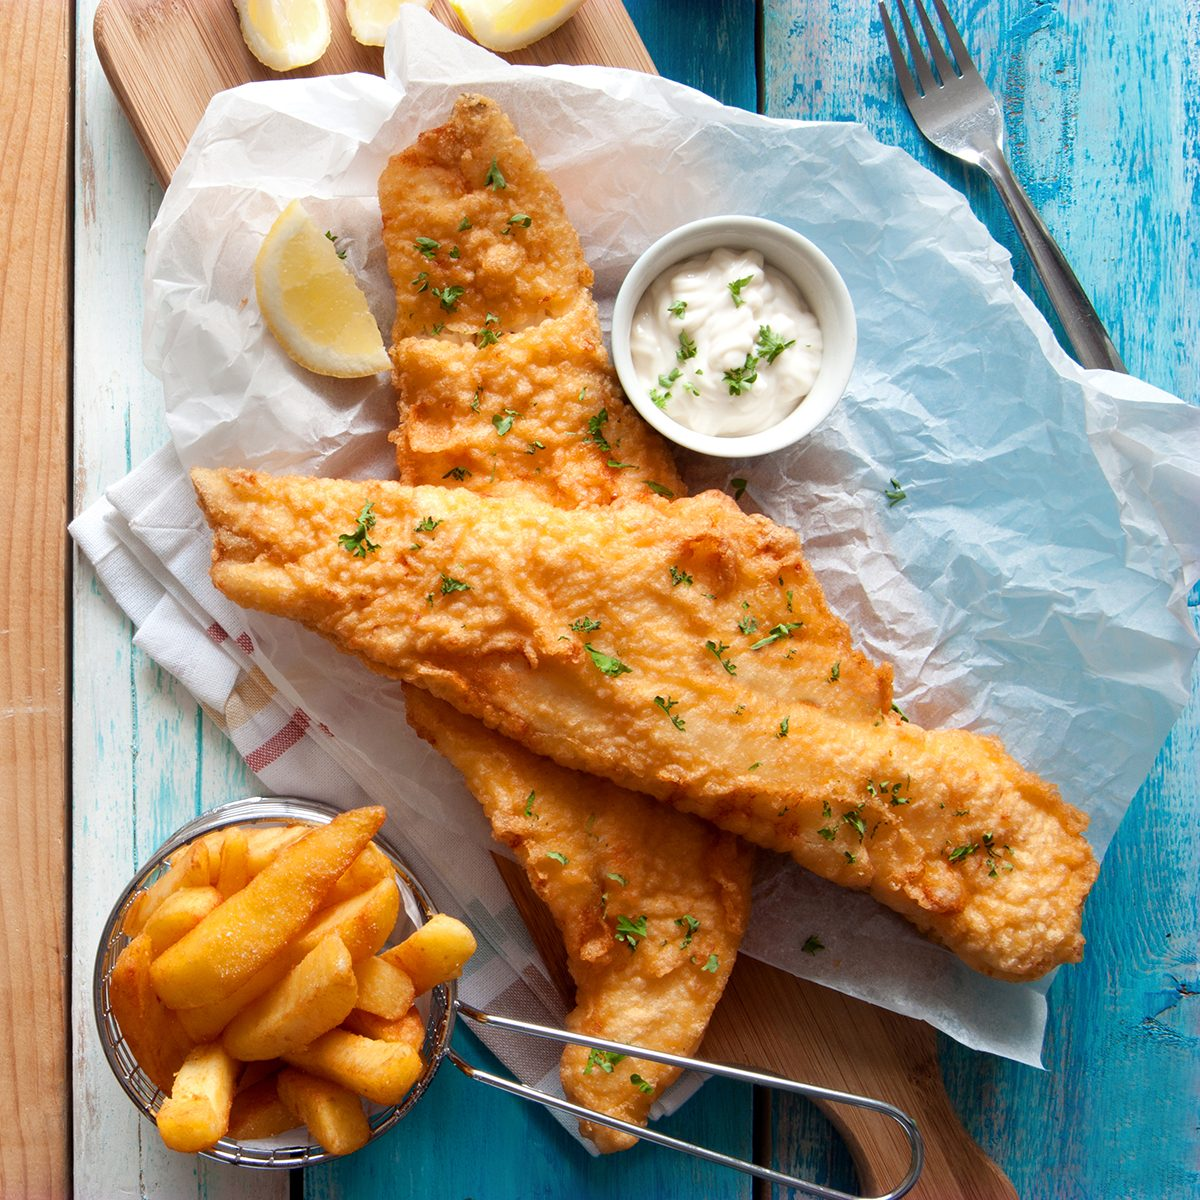 Traditional British fried fish in batter with chips in a basket